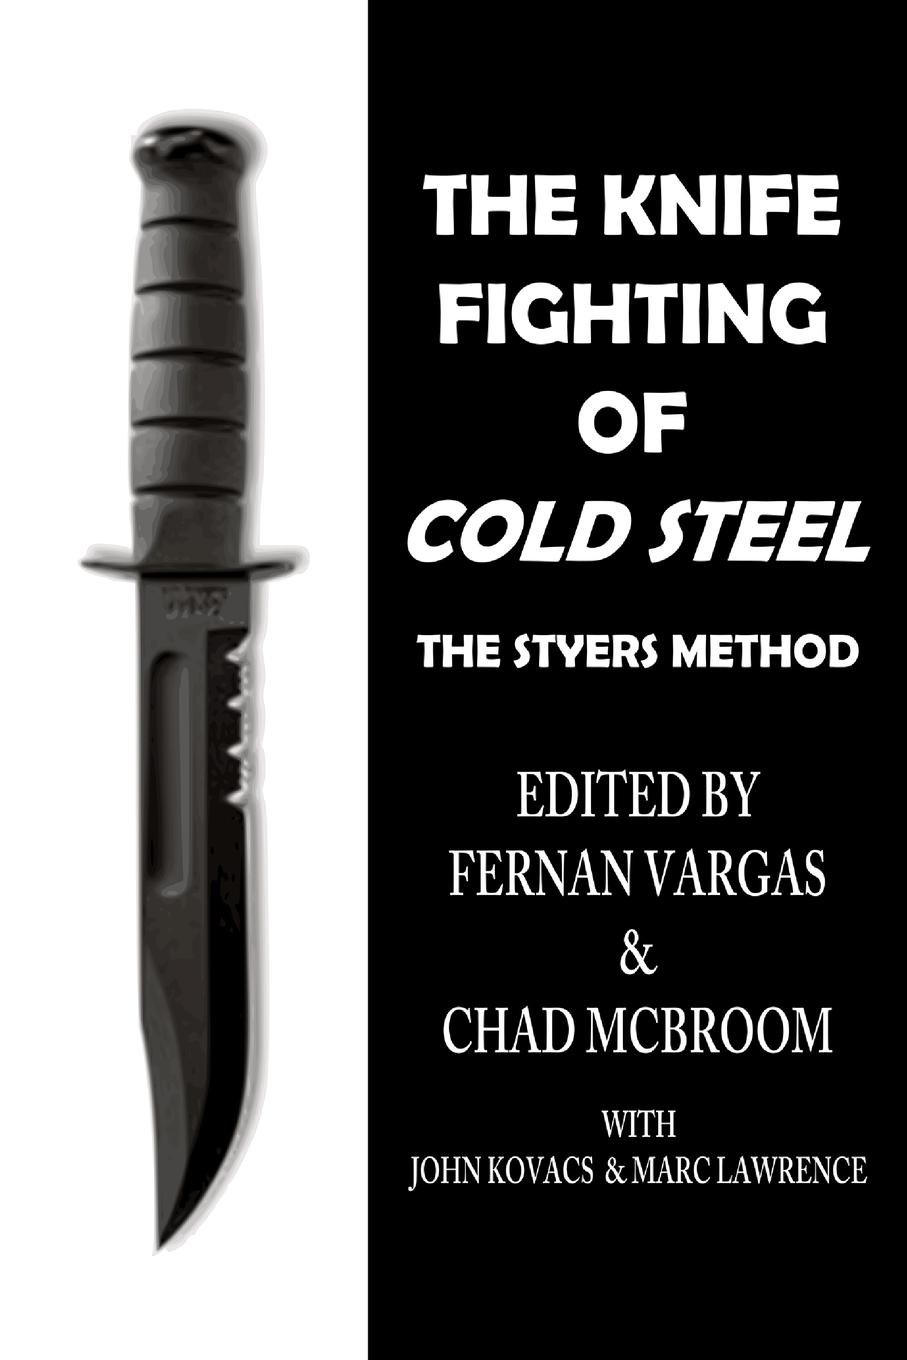 Chad McBroom, Marc Lawrence, John Kovacs The Knife Fighting of Cold Steel stainless steel butterfly comb knife pocket knife comb